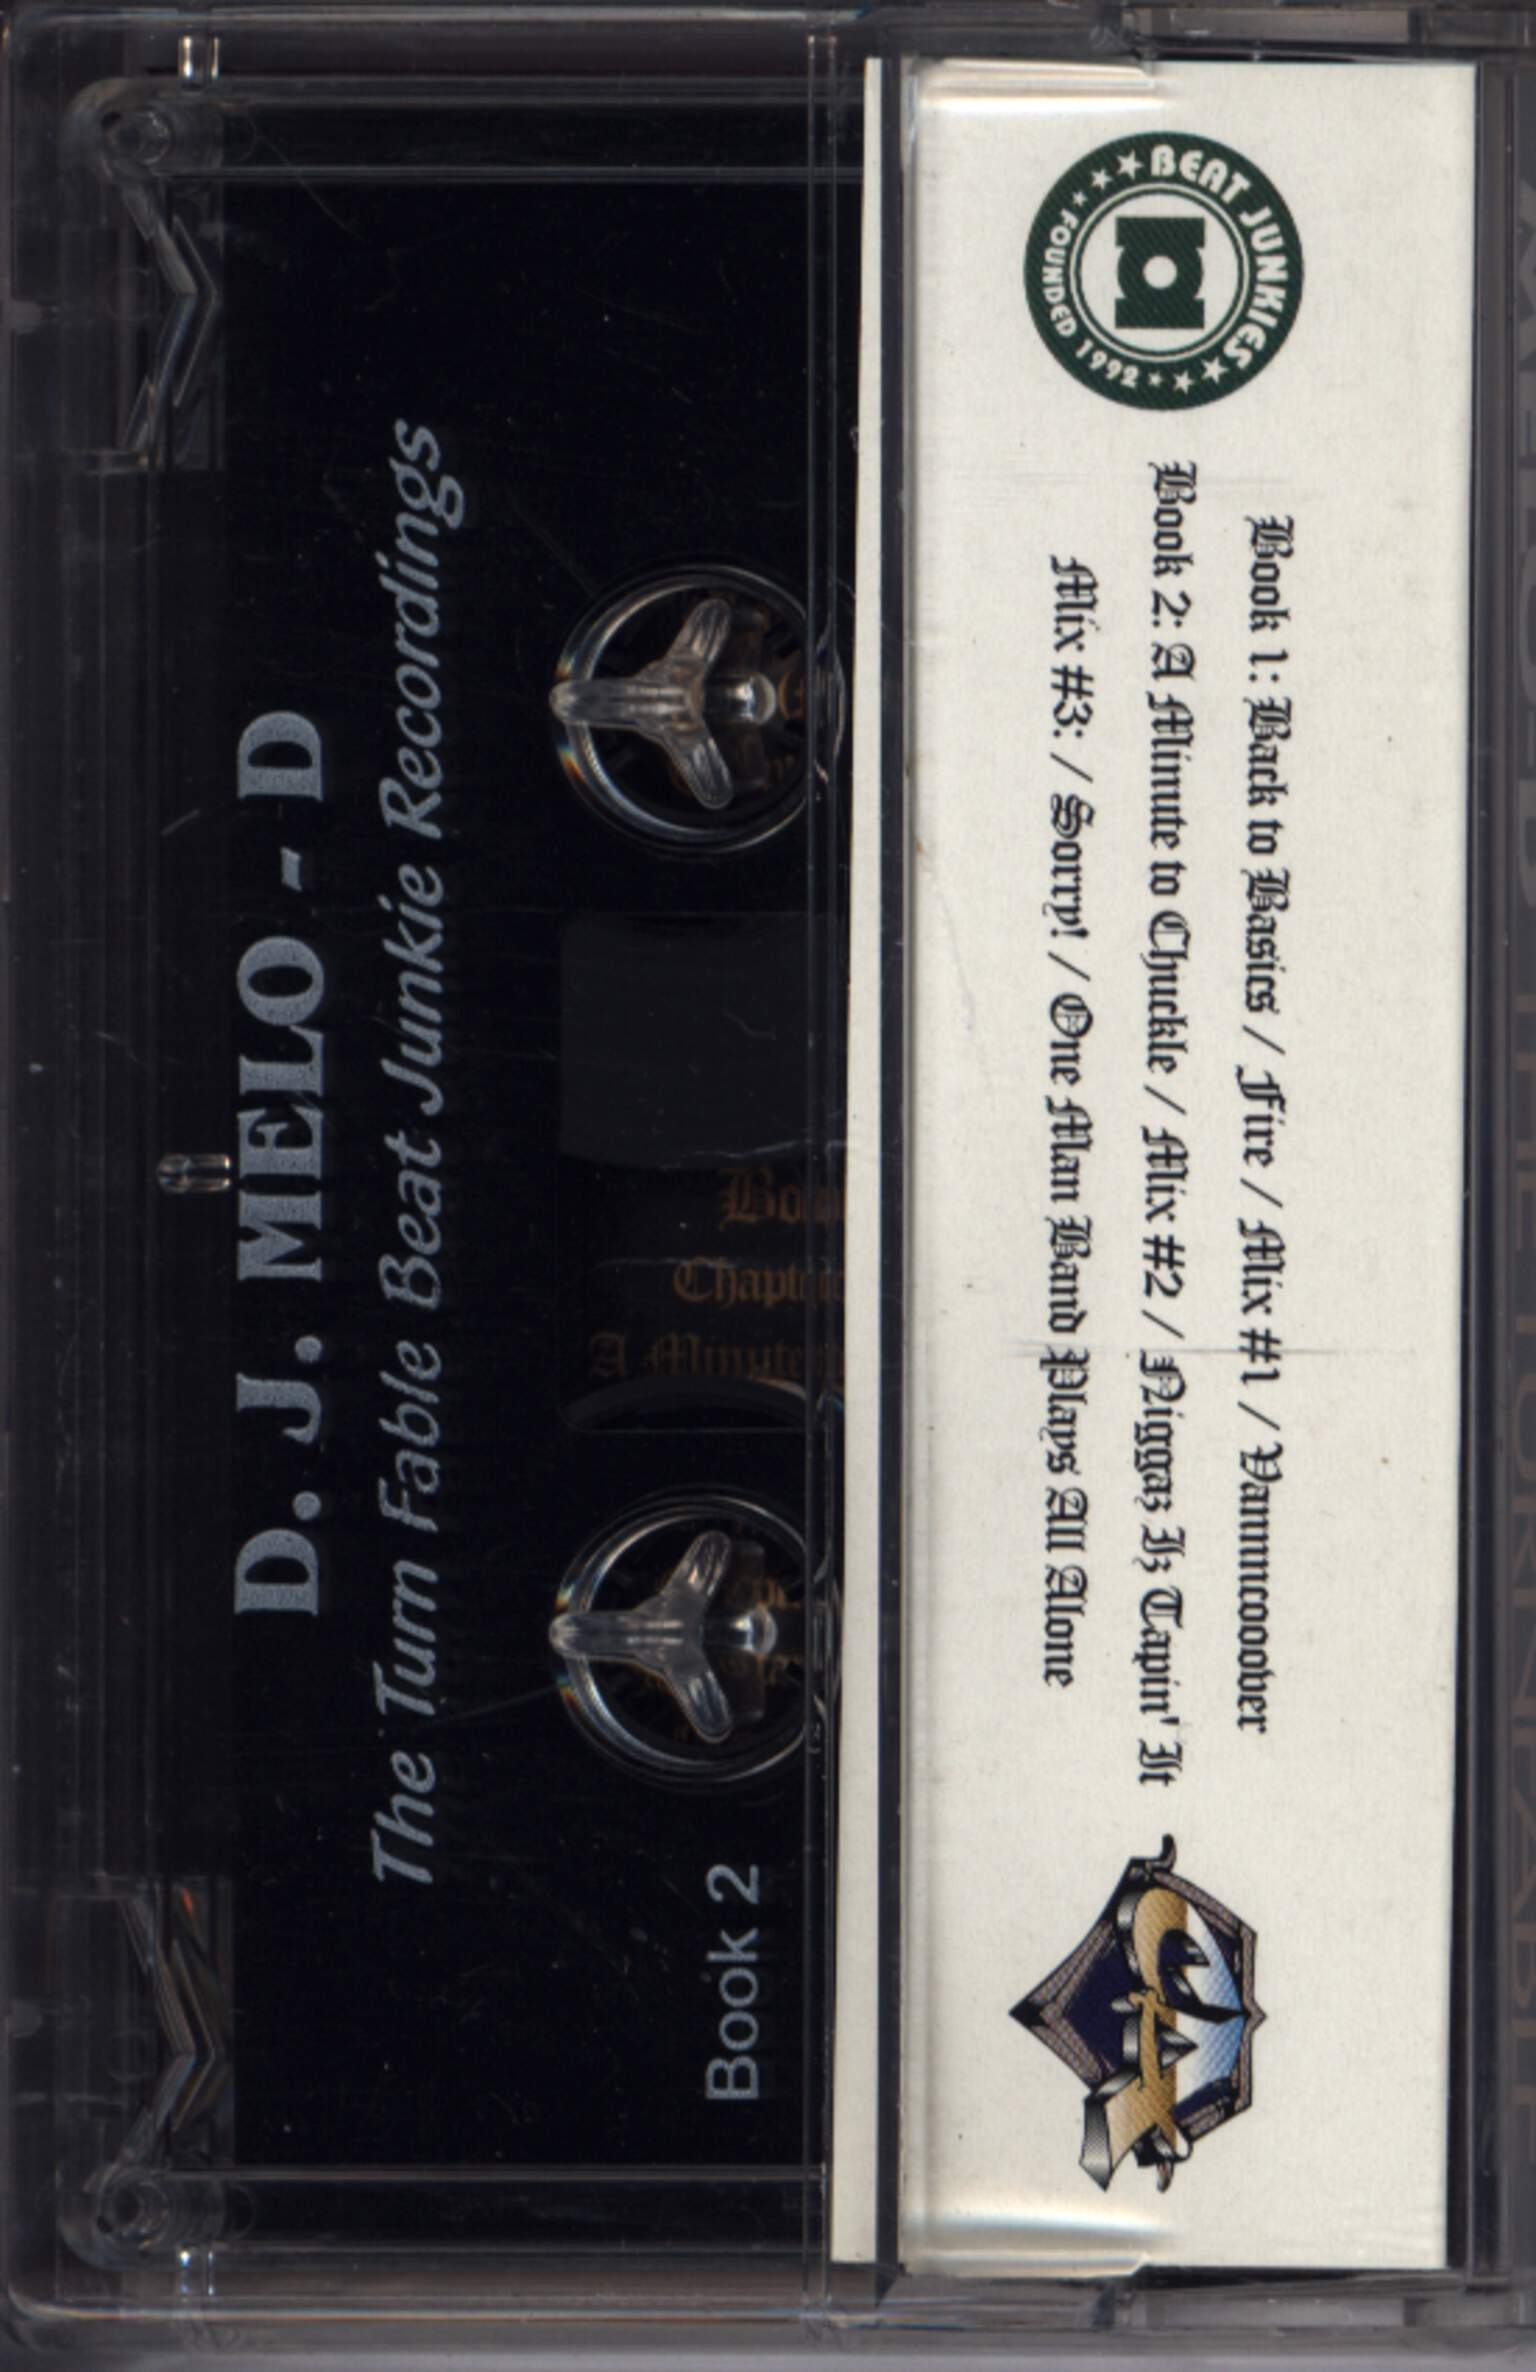 Melo-D: The Turn Fable, Compact Cassette